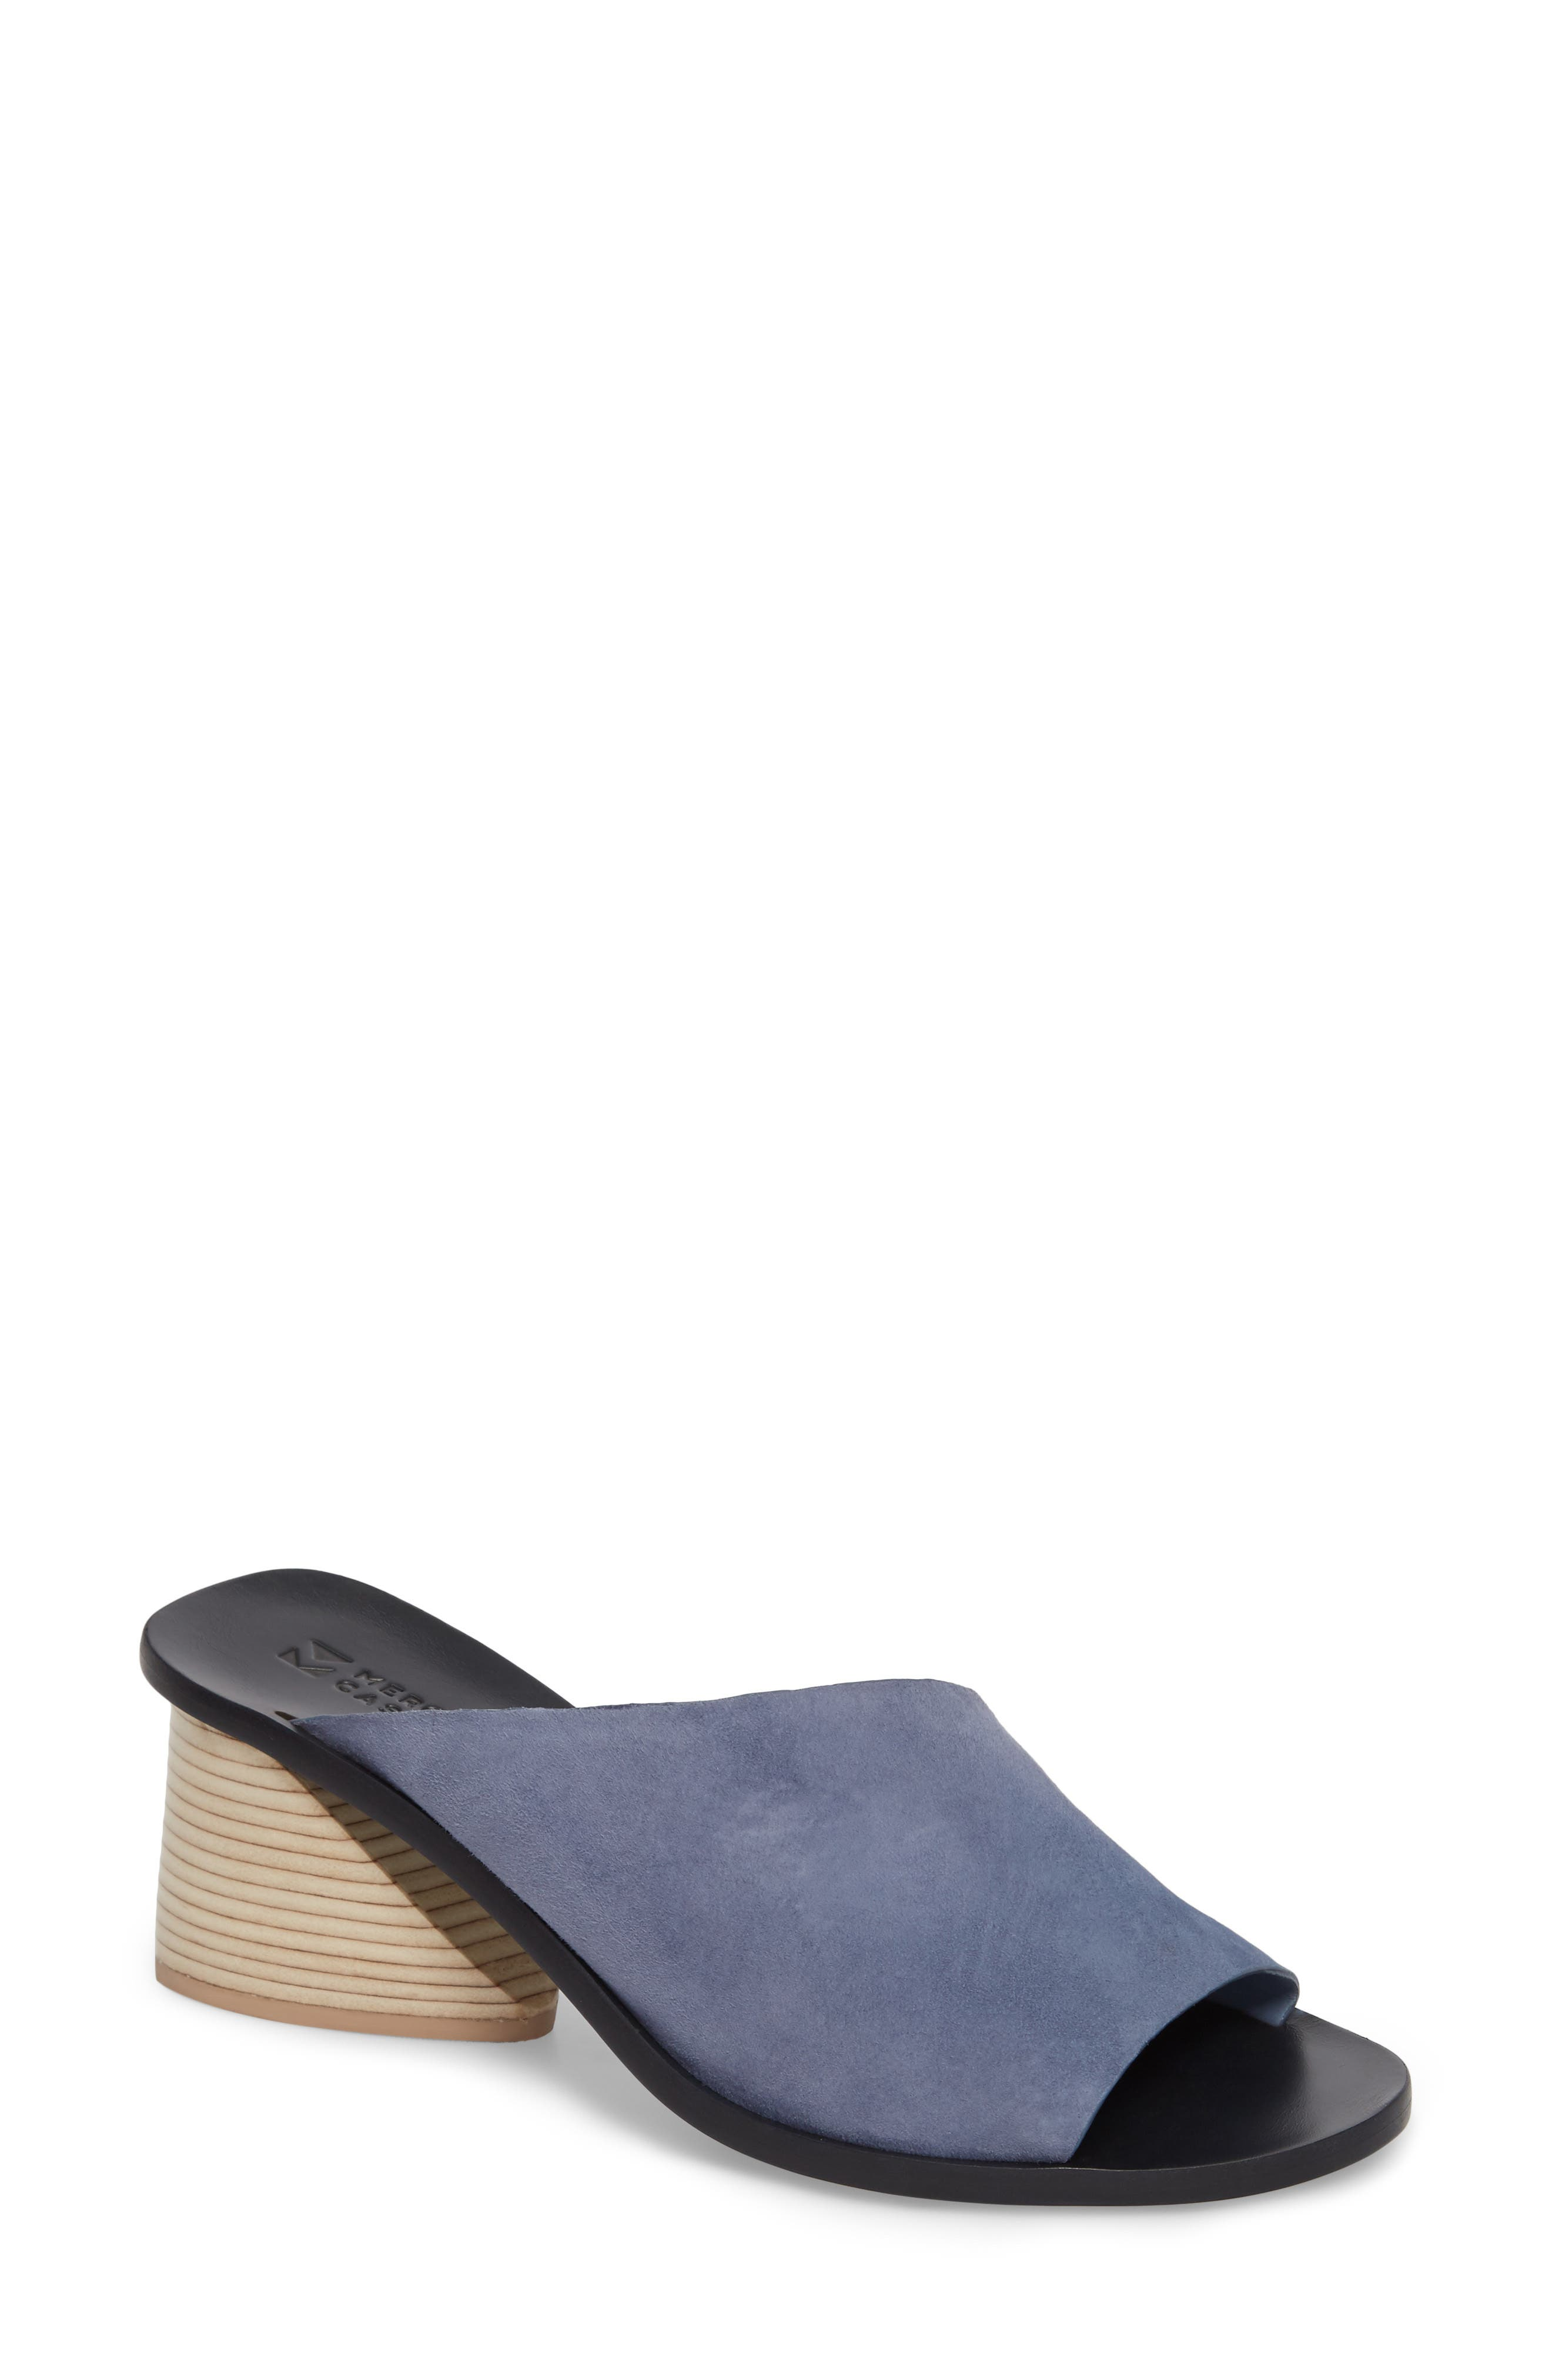 Mercedes Castillo Izar Slide Sandal (Women)